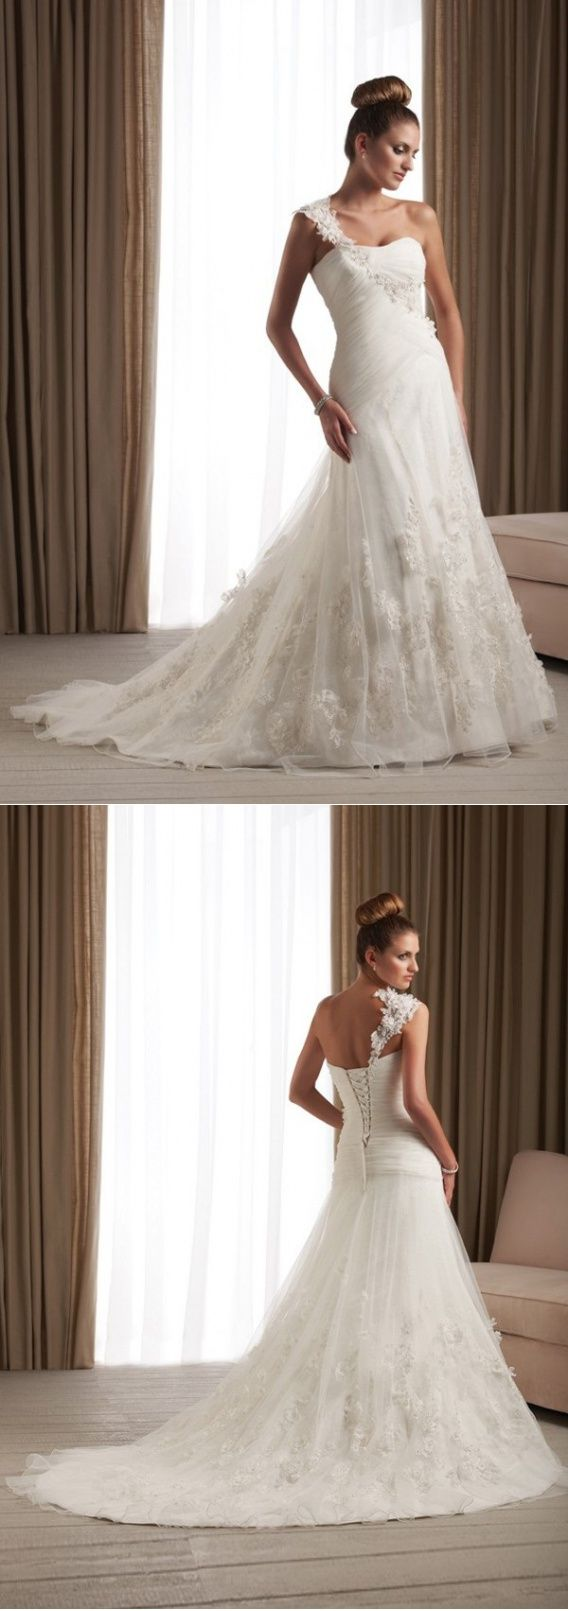 A Wedding Dress With Regard To Subsequent Marital Life Convertible Satin Draped…